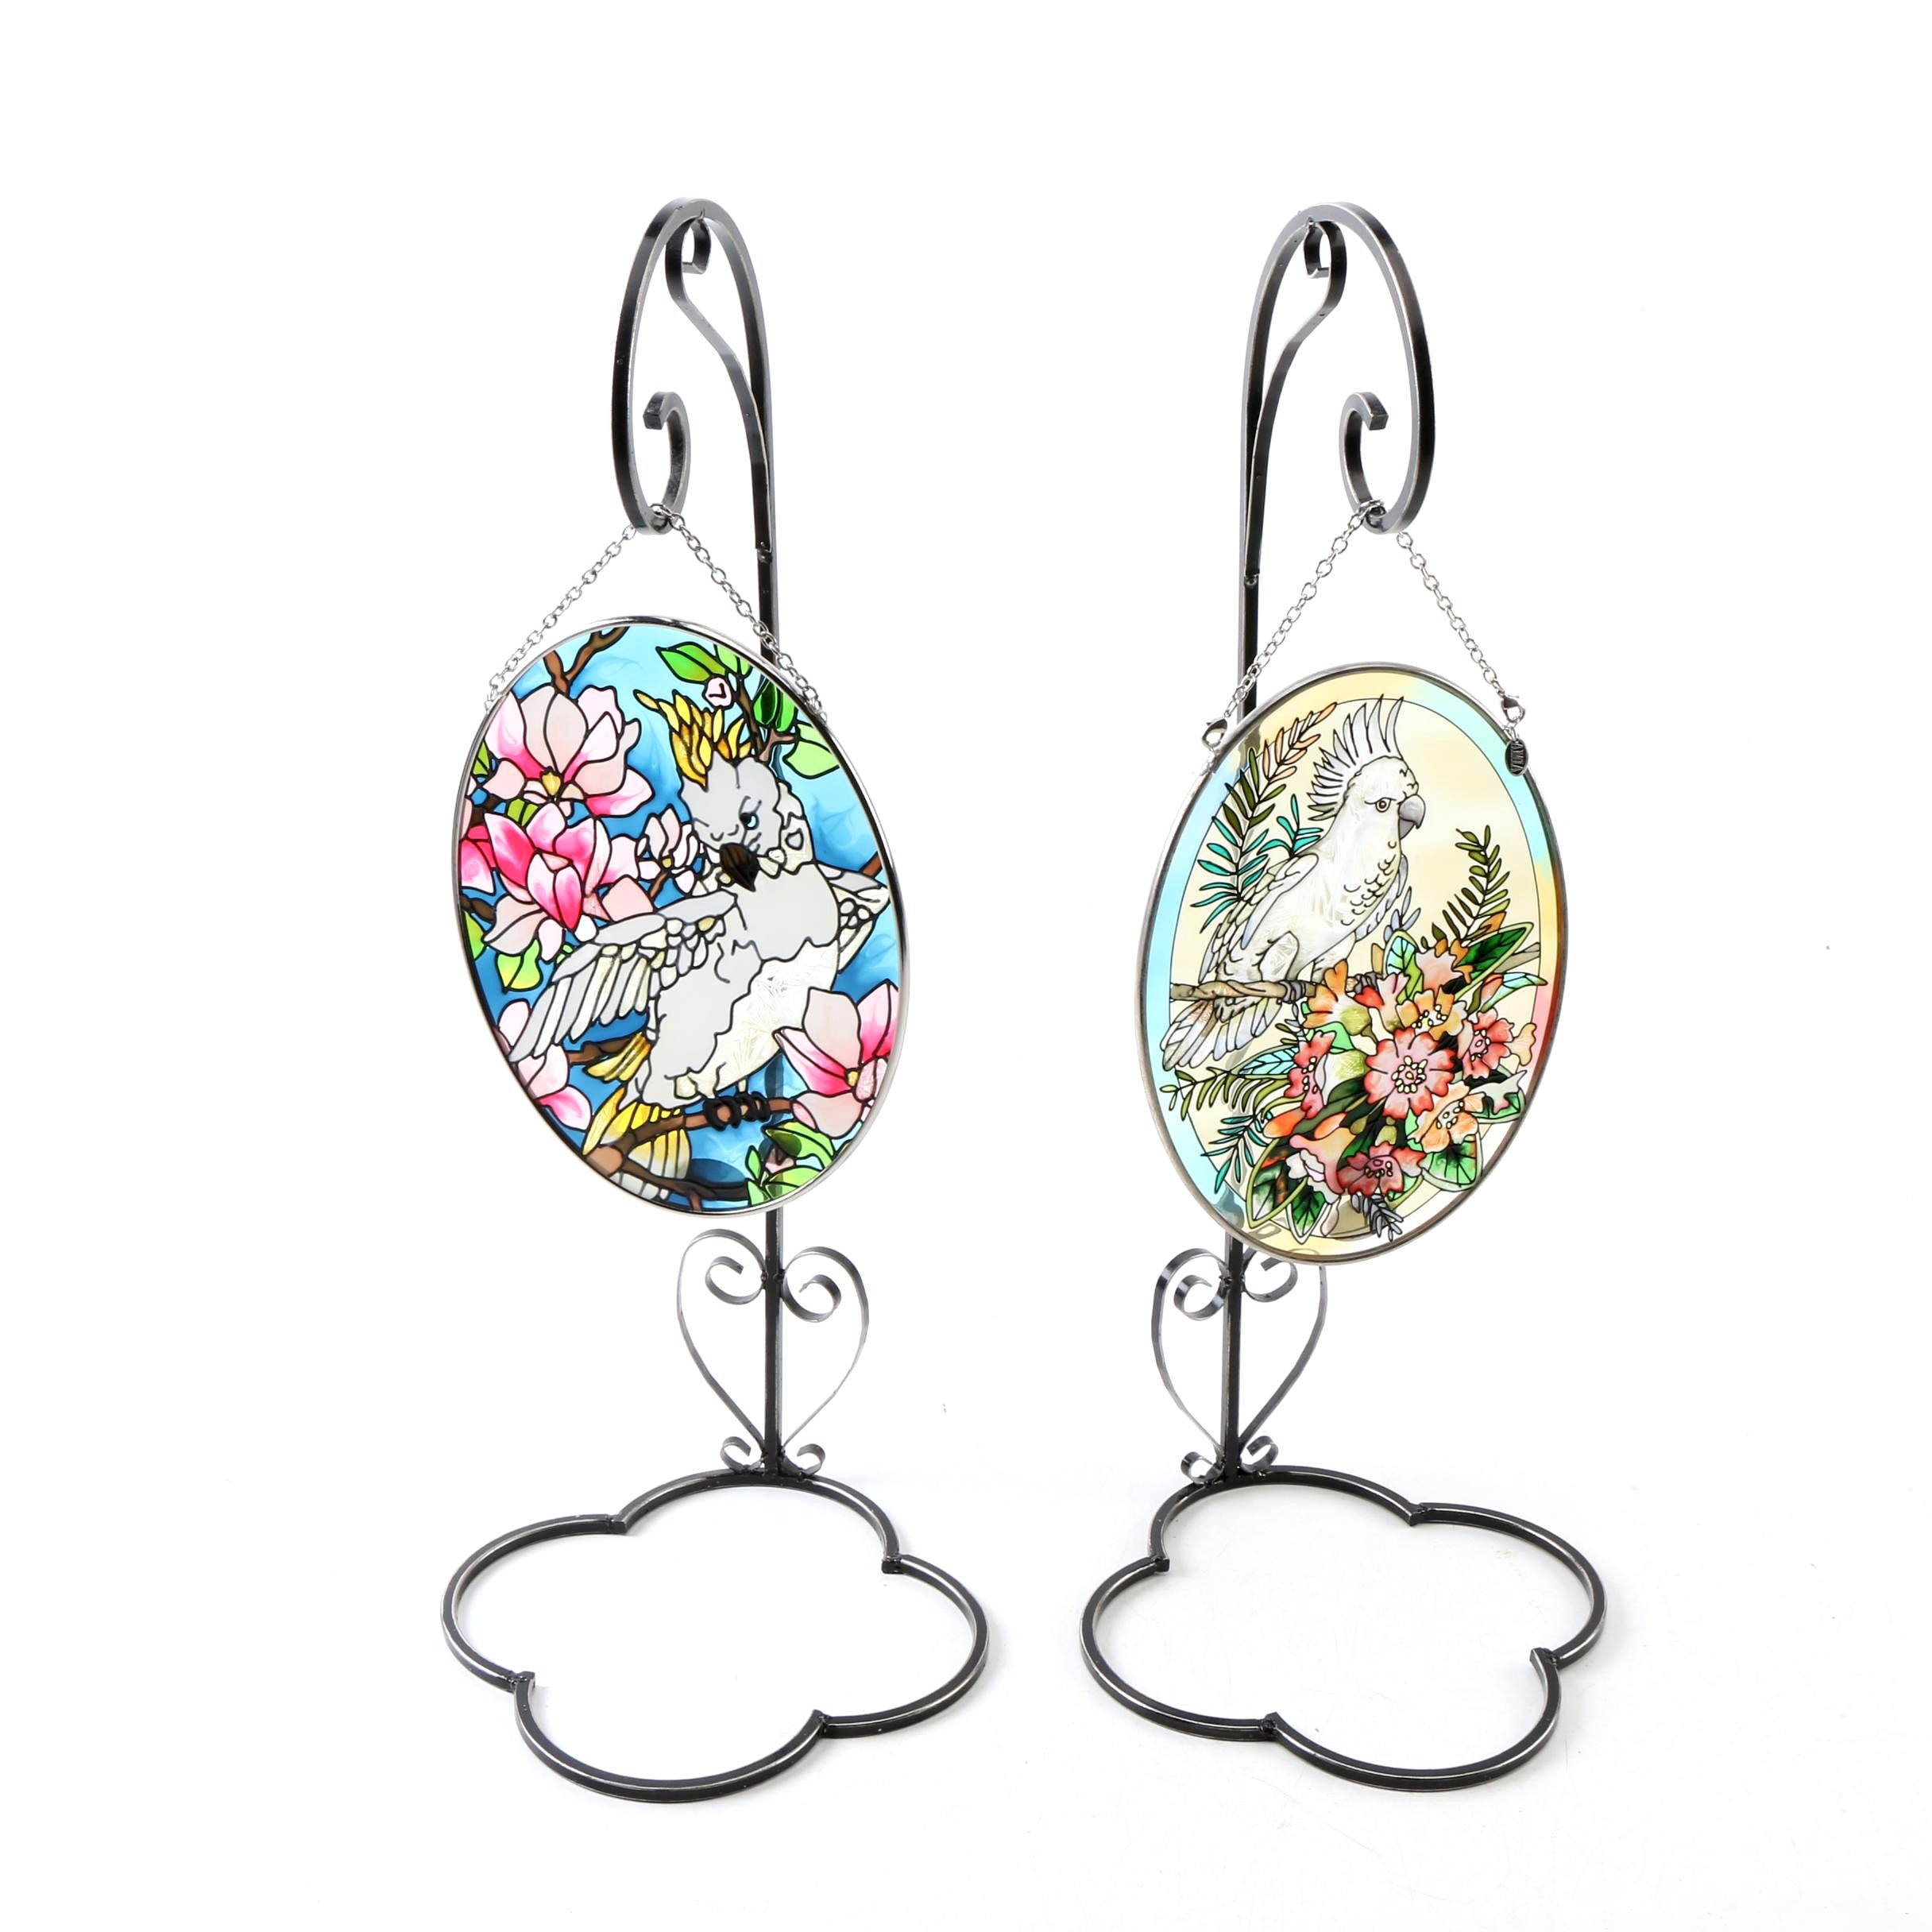 Pair of Stained Glass Style Suncatchers with Display Stands